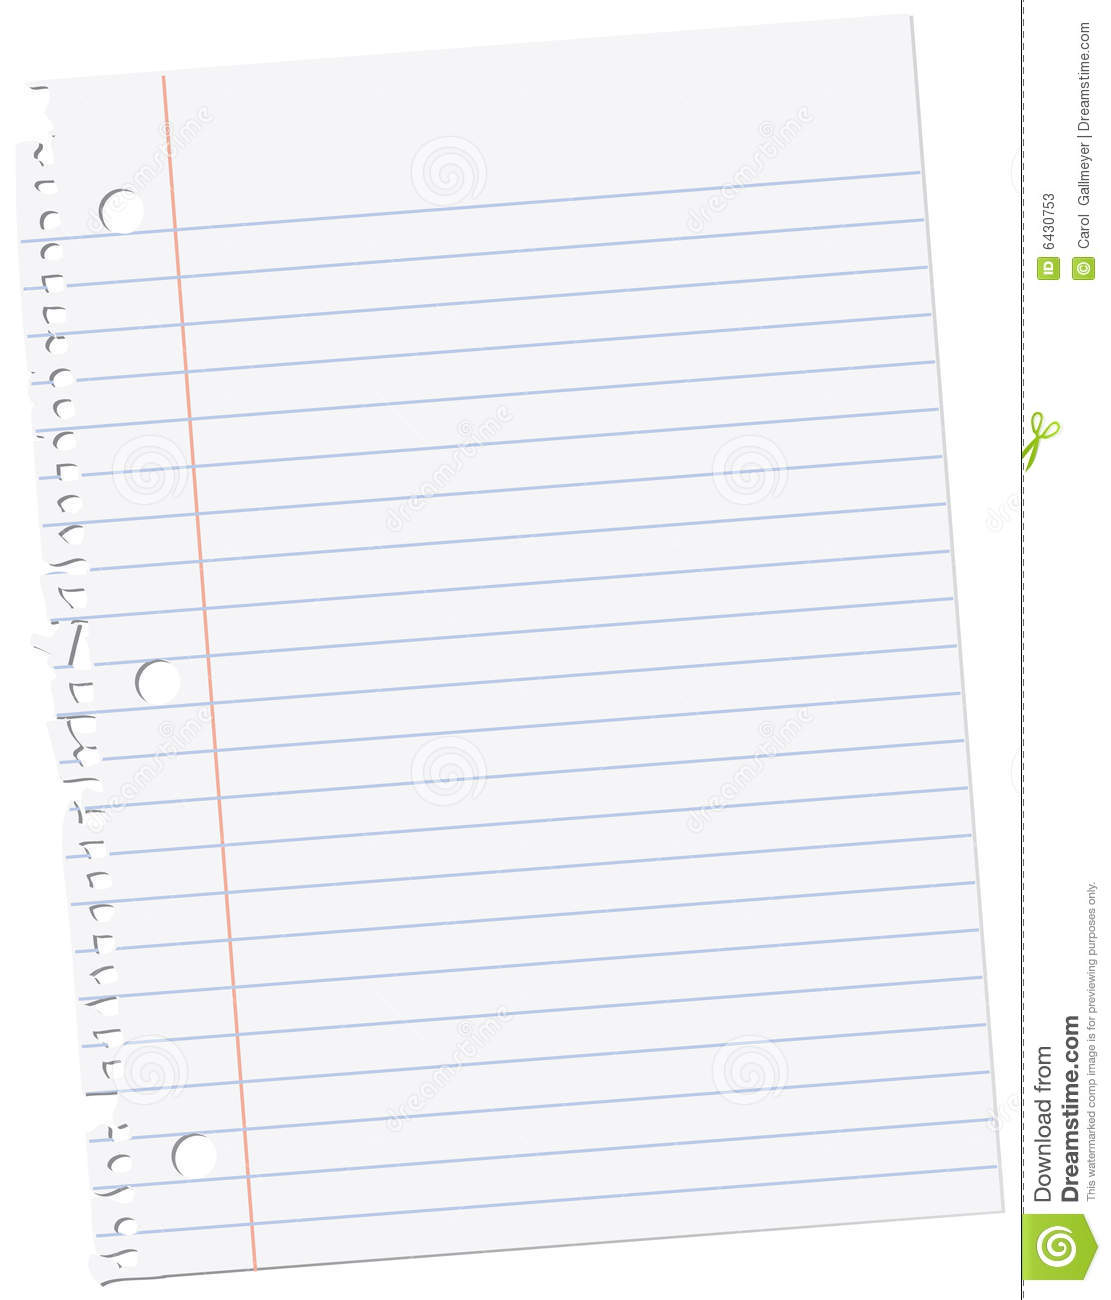 single sheet of ruled notebook paper from a spiral binding.